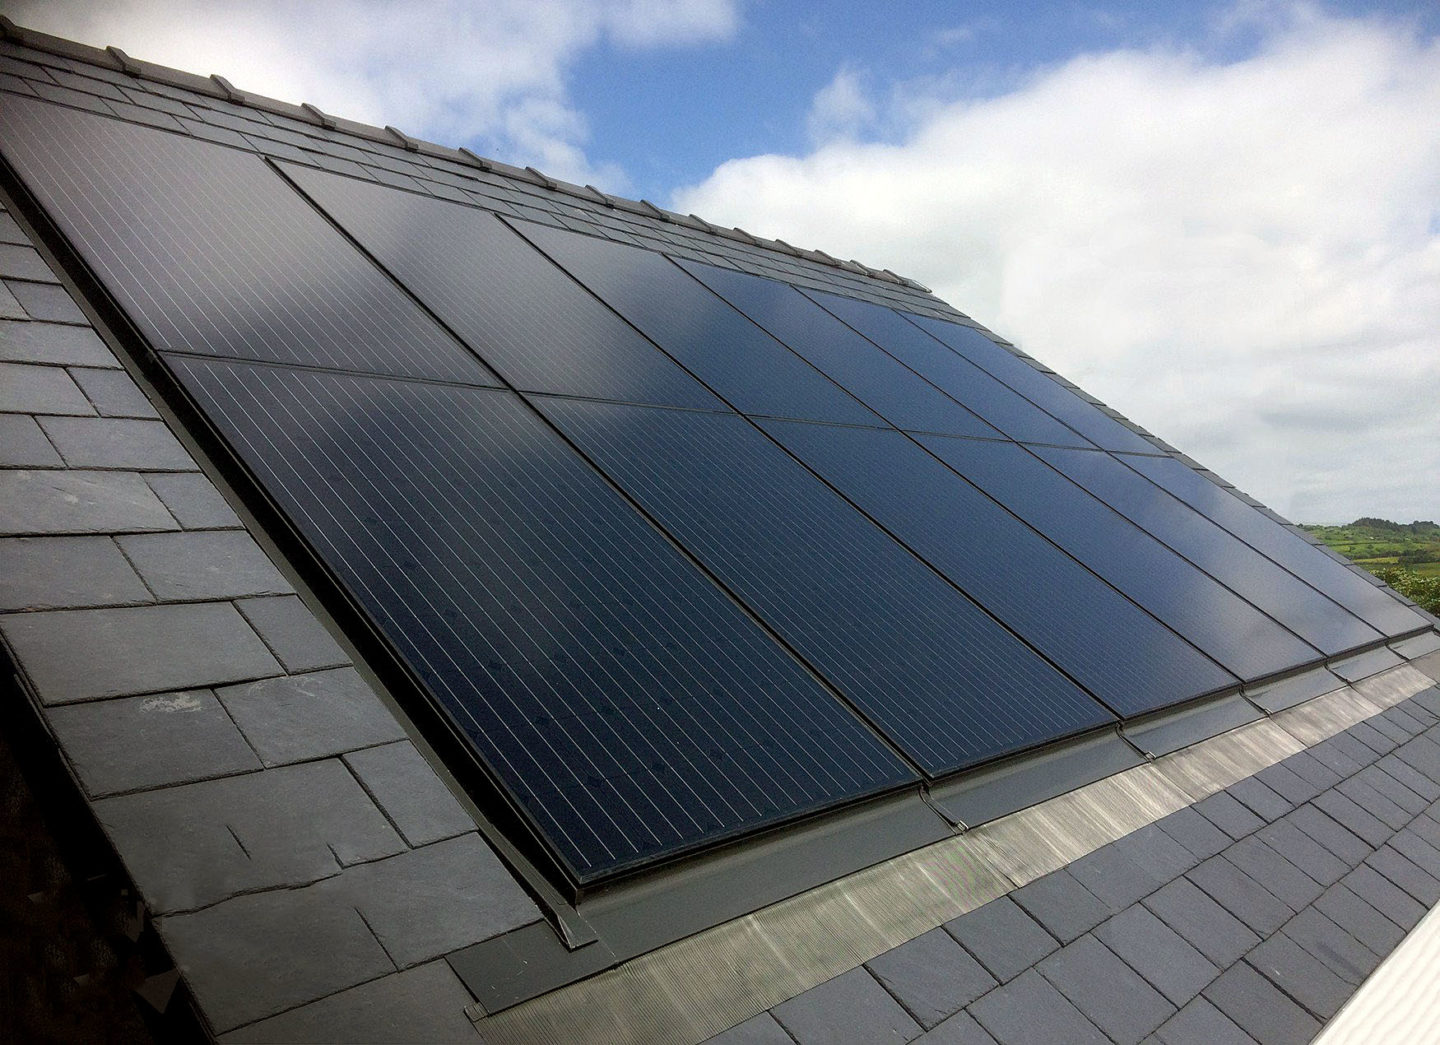 Black solar panels with clouds in background